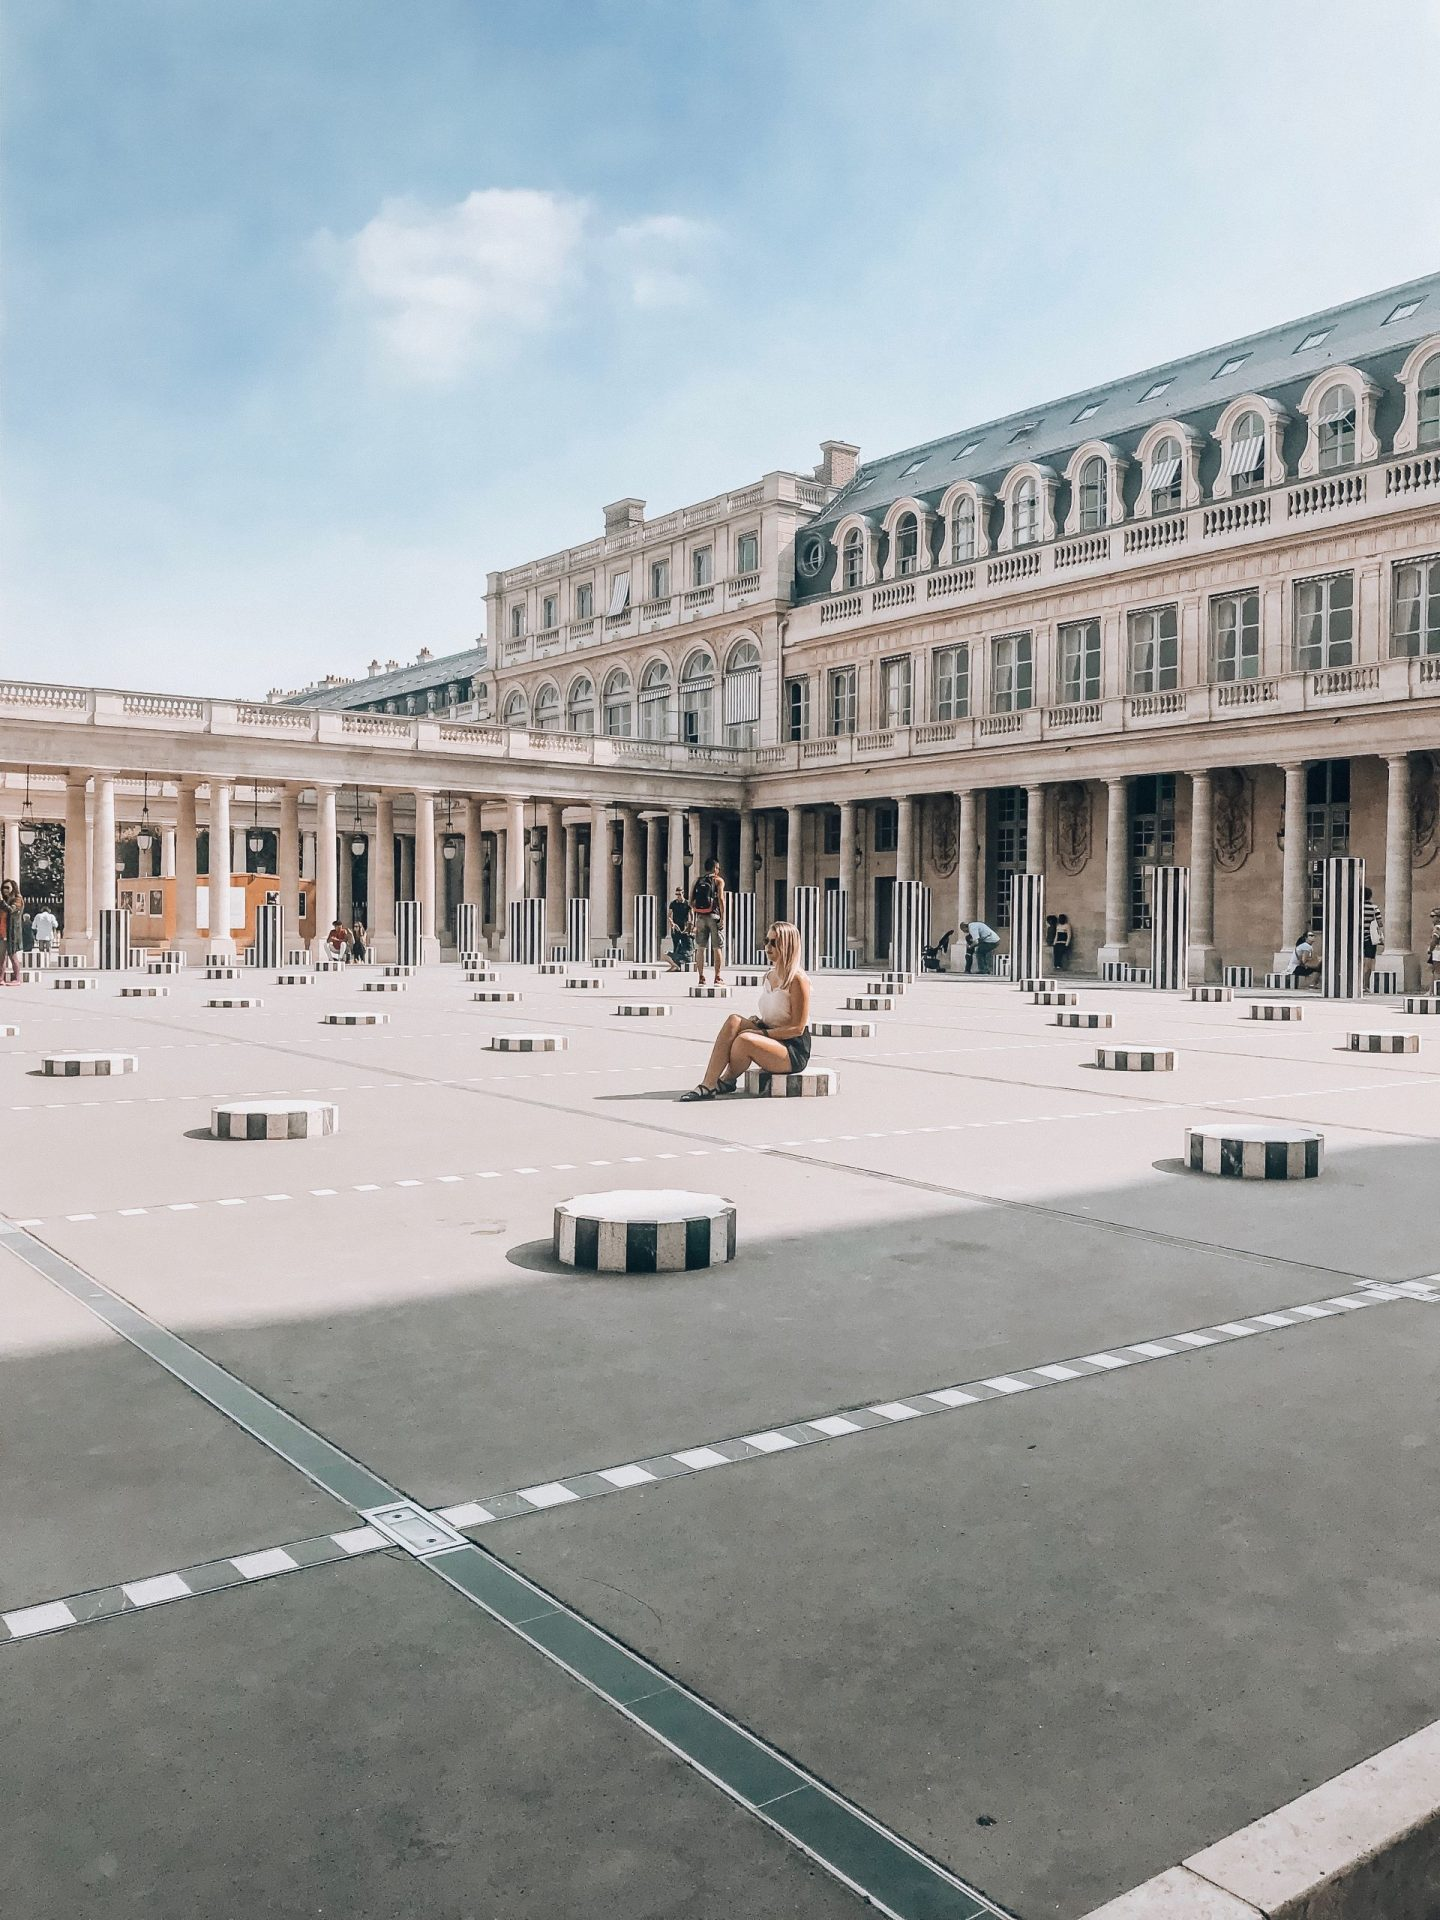 palais royal, picture, photo, paris in france, photography, instagram, travel